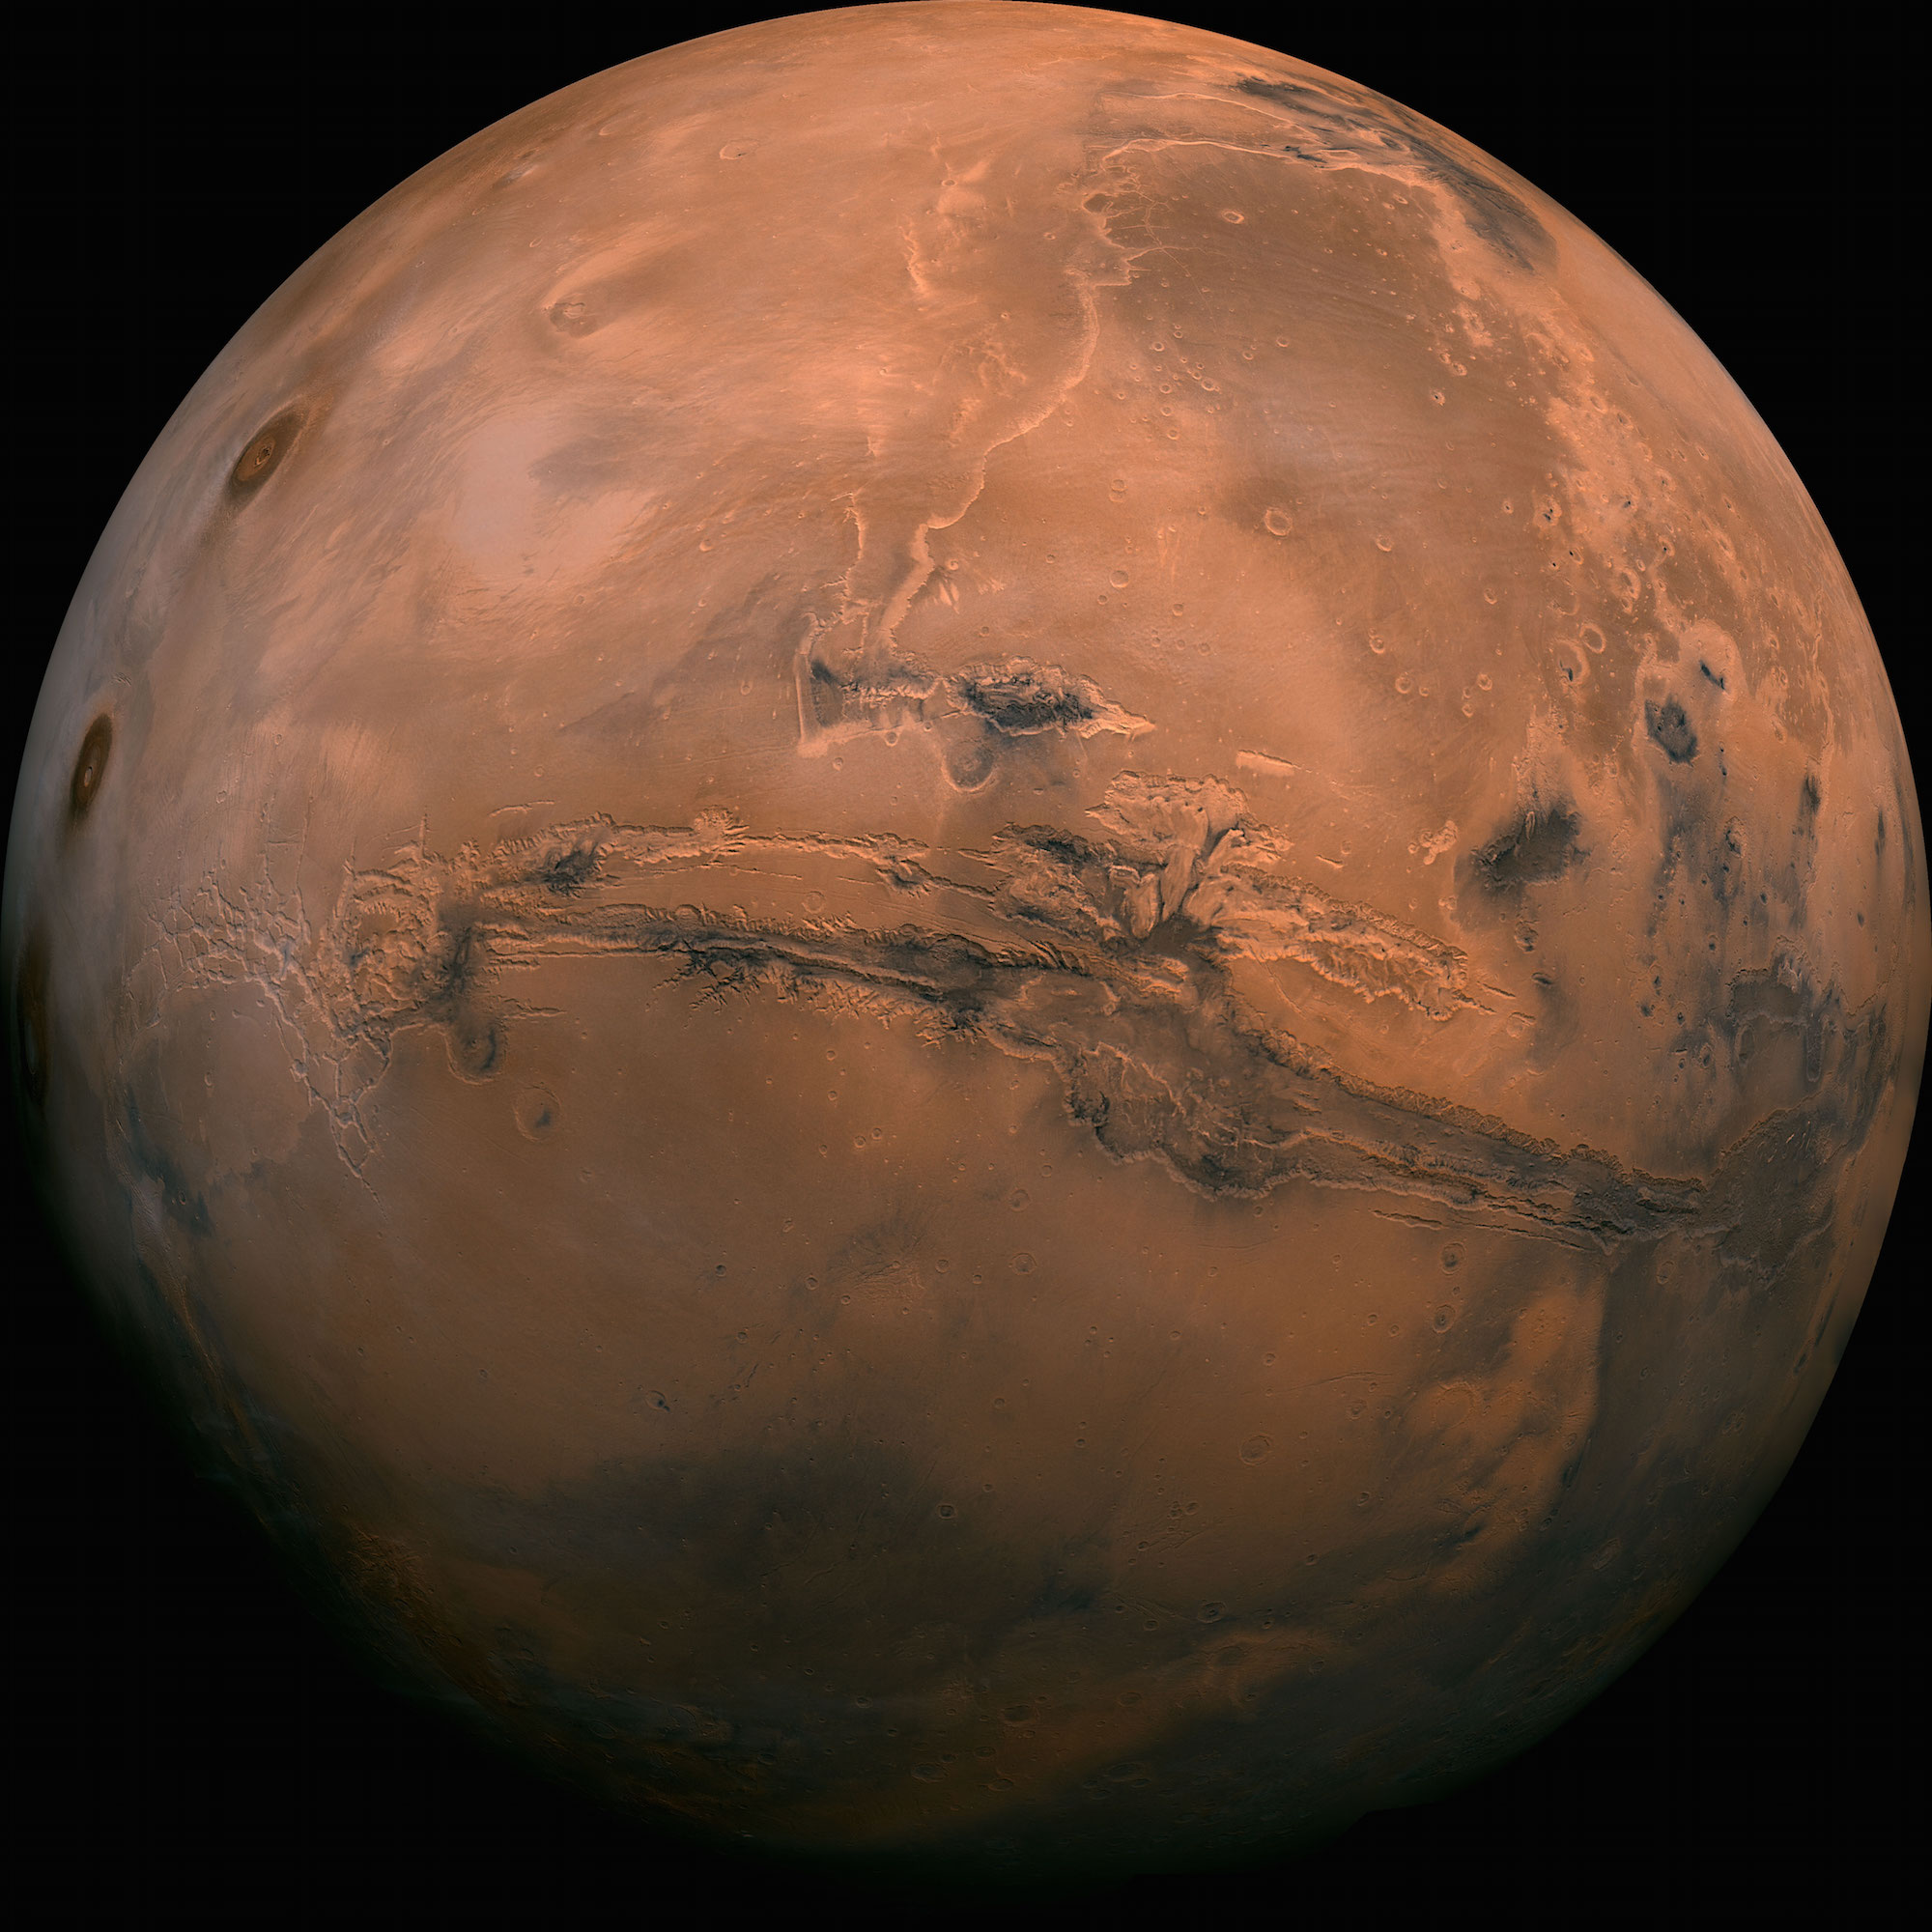 Global view of Mars centered on Elysium Mons   The